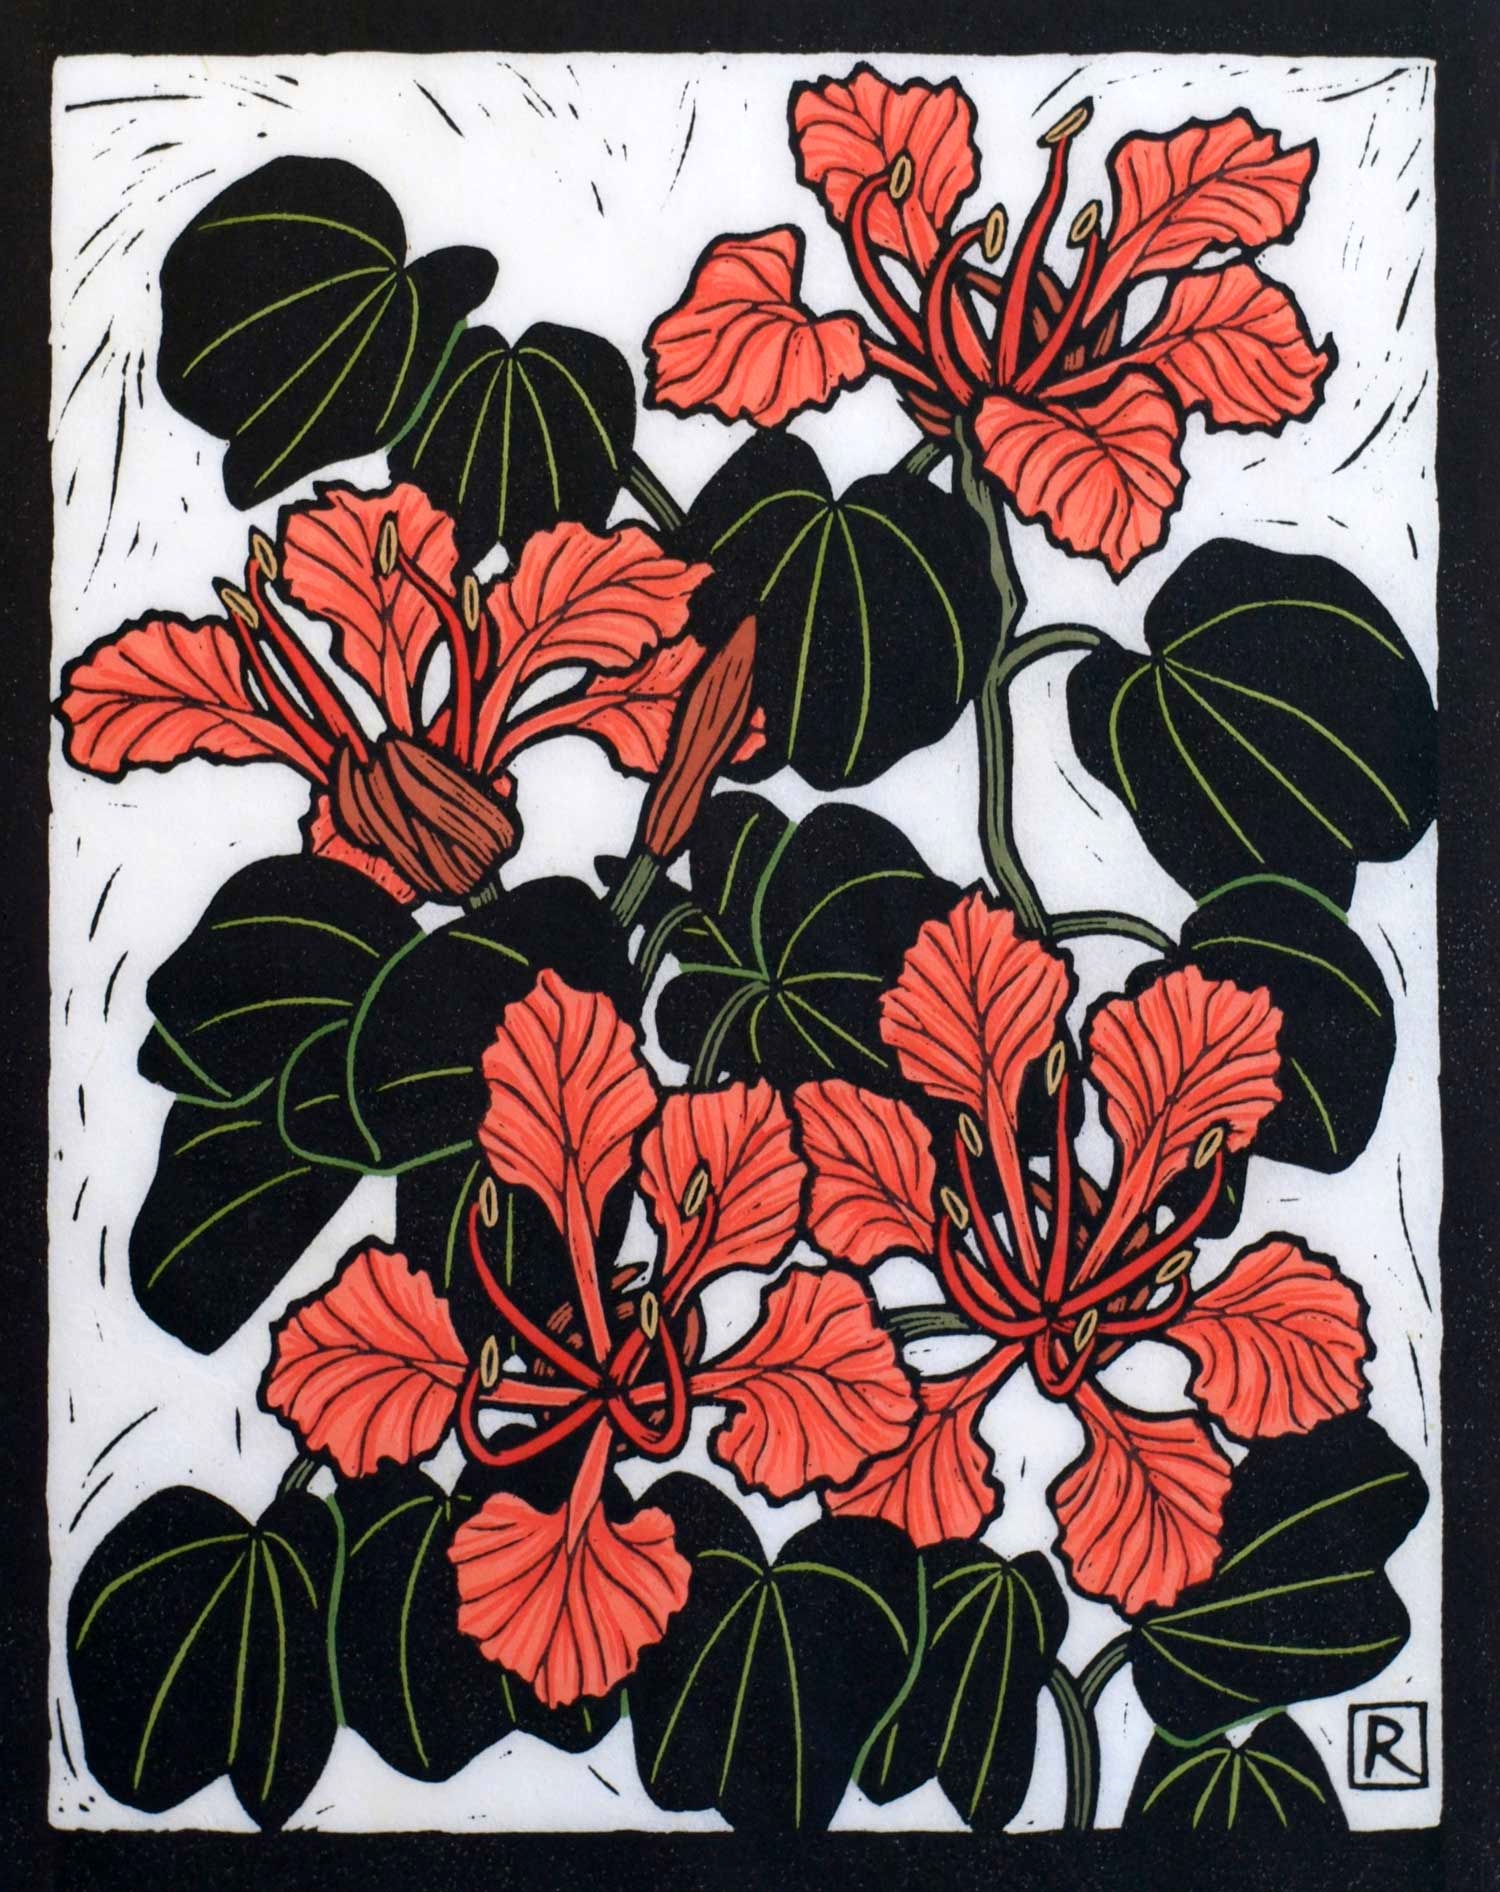 BAUHINIA  28 X 22 CM, EDITION OF 50  HAND-COLOURED LINOCUT ON HANDMADE JAPANESE PAPER $650